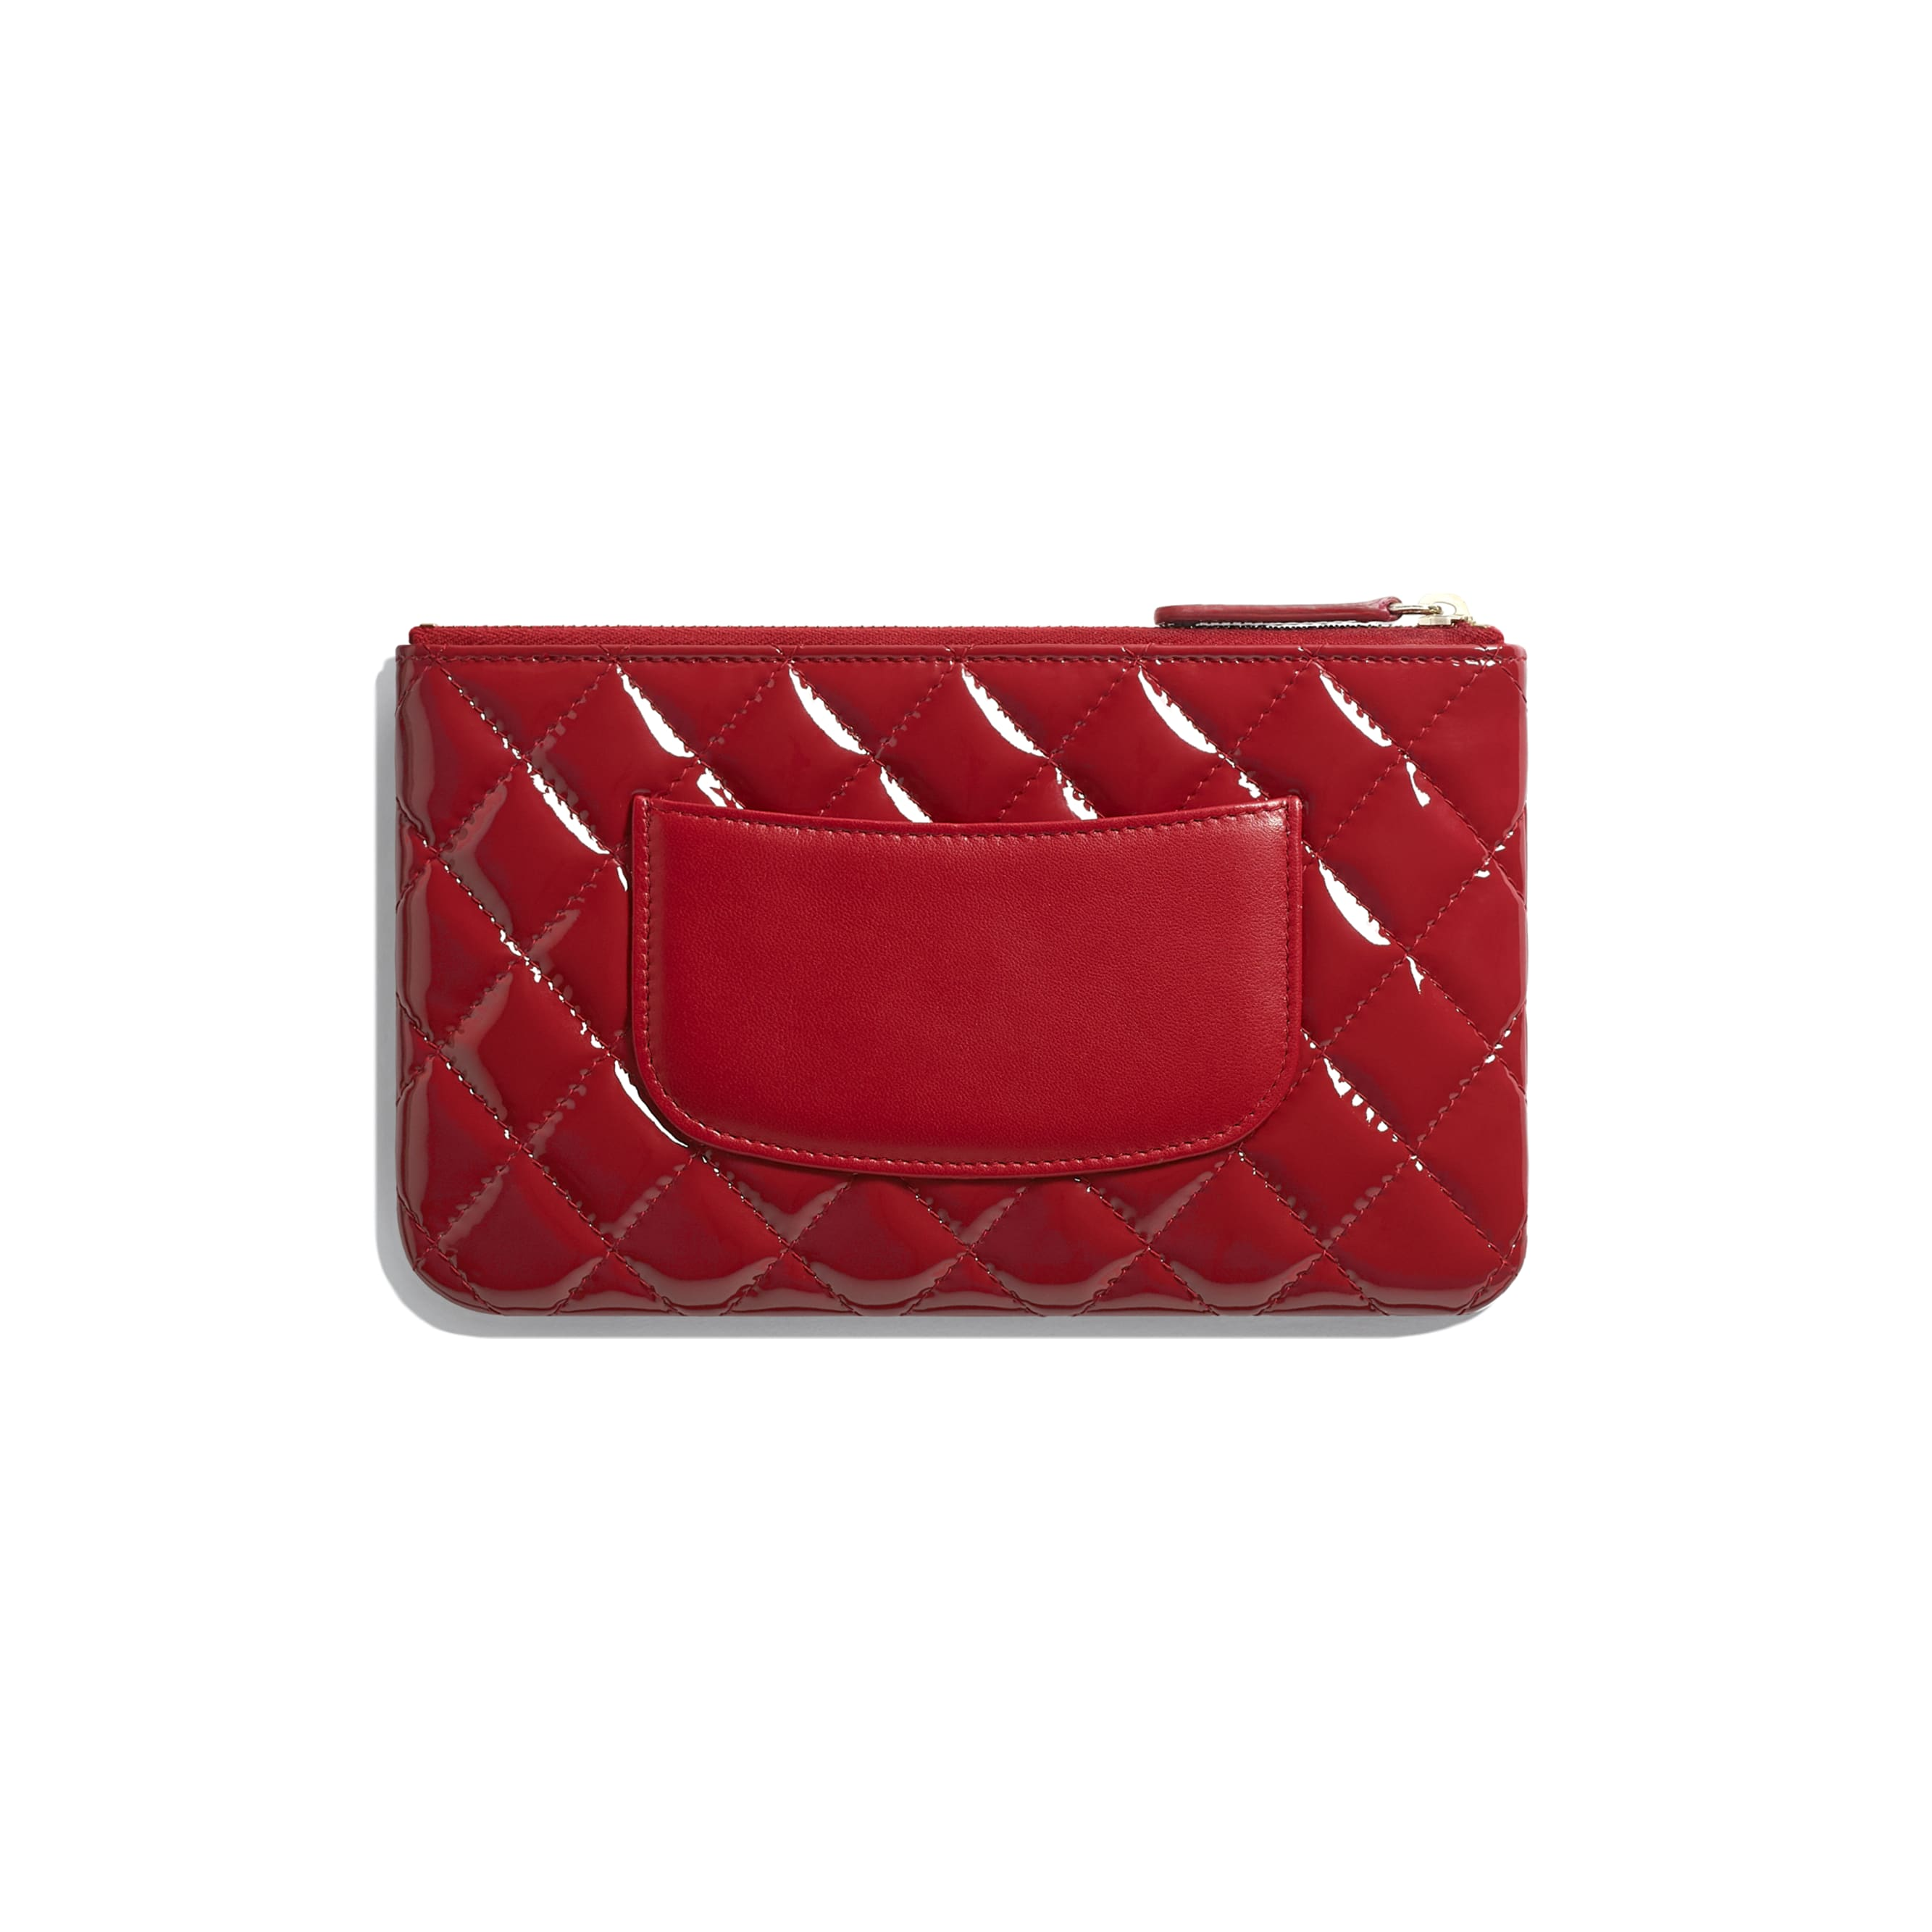 Small Pouch - Red - Patent Calfskin, Lambskin & Gold-Tone Metal - CHANEL - Alternative view - see standard sized version